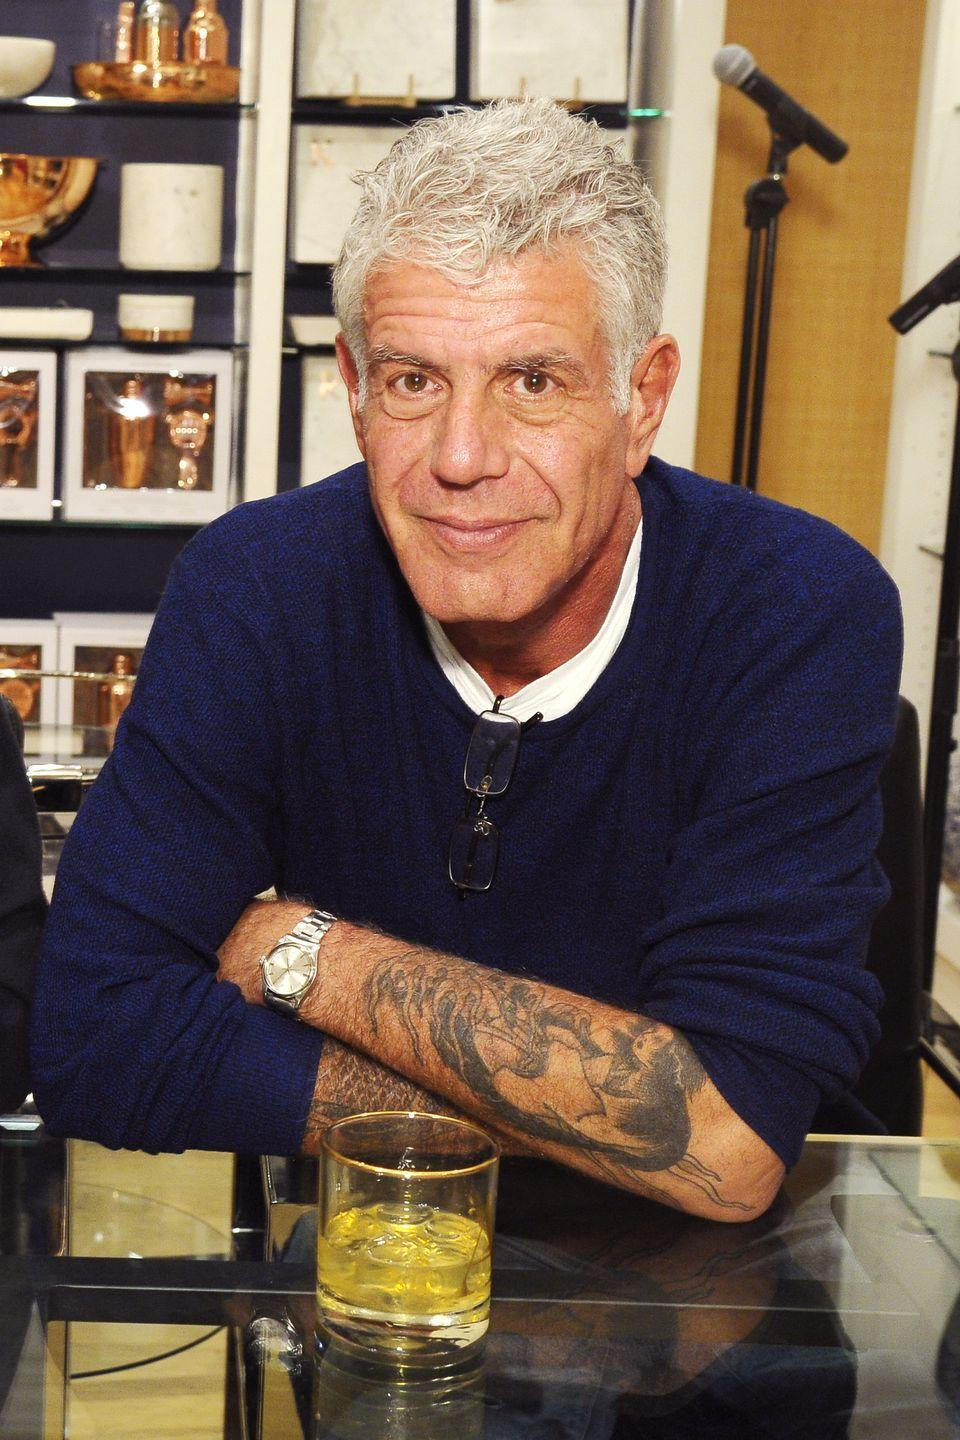 <p>Bourdain attends a book signing event for his book <em>Appetites: A Cookbook</em> on December 2, 2016 in New York.</p>